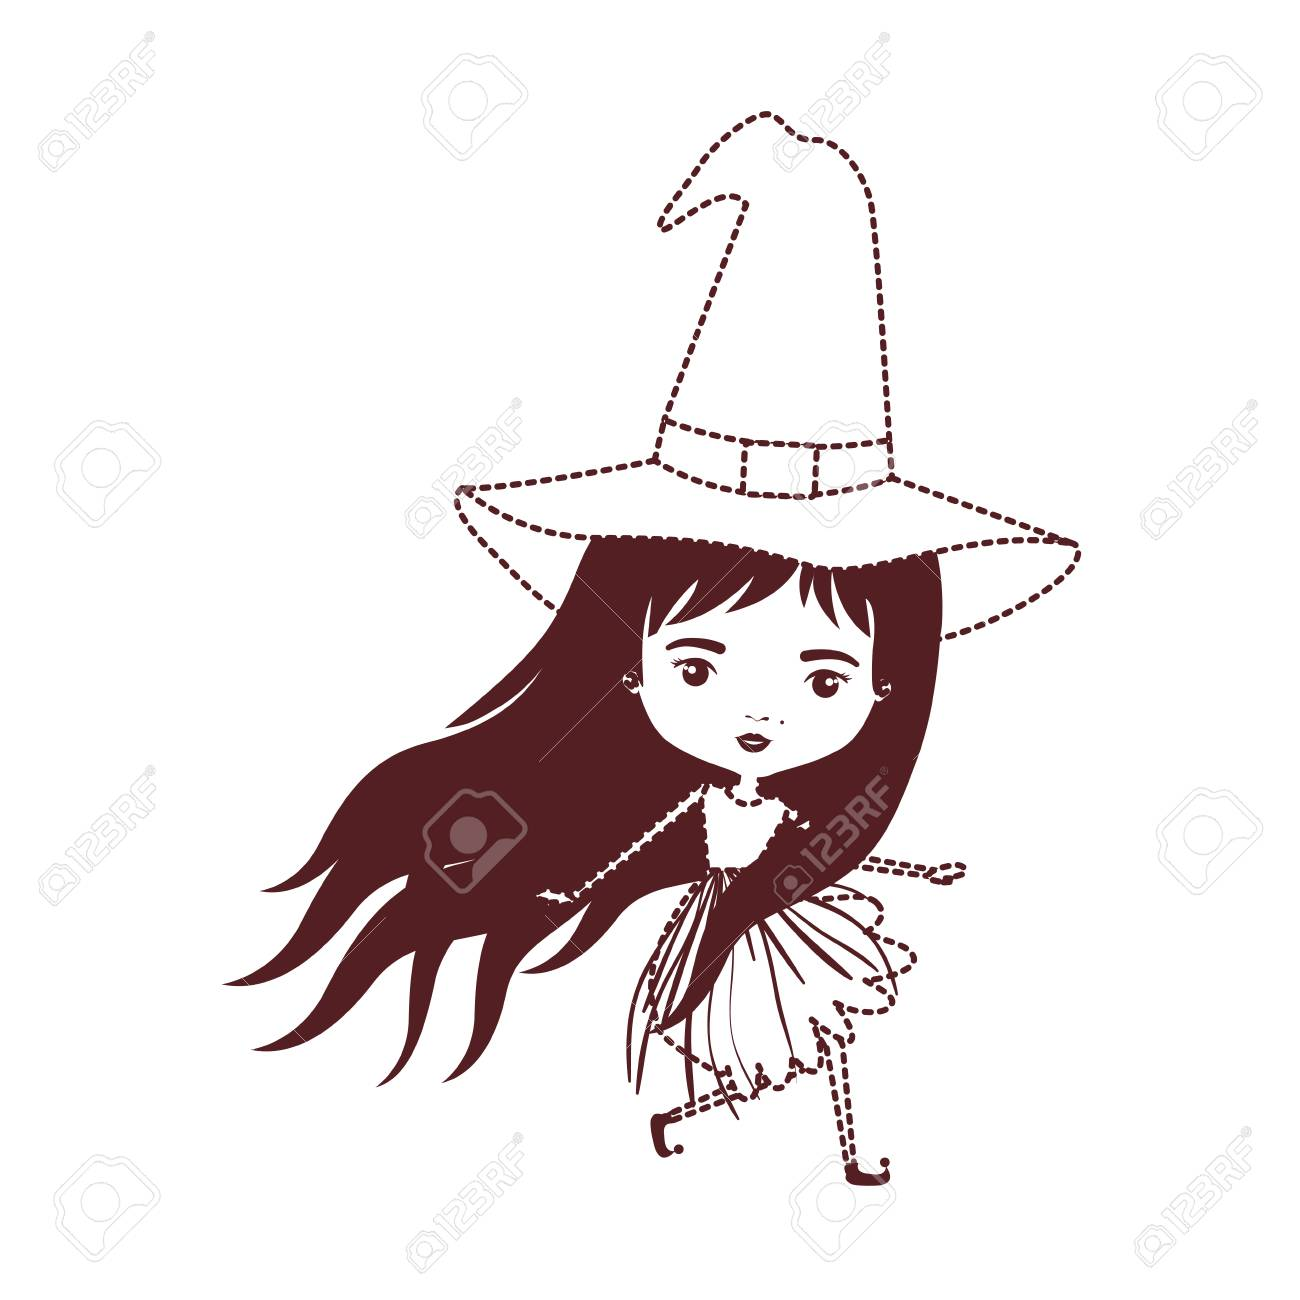 Cute Witch In Brown Dotted Silhouette Vector Illustration Royalty Free Cliparts Vectors And Stock Illustration Image 95003465